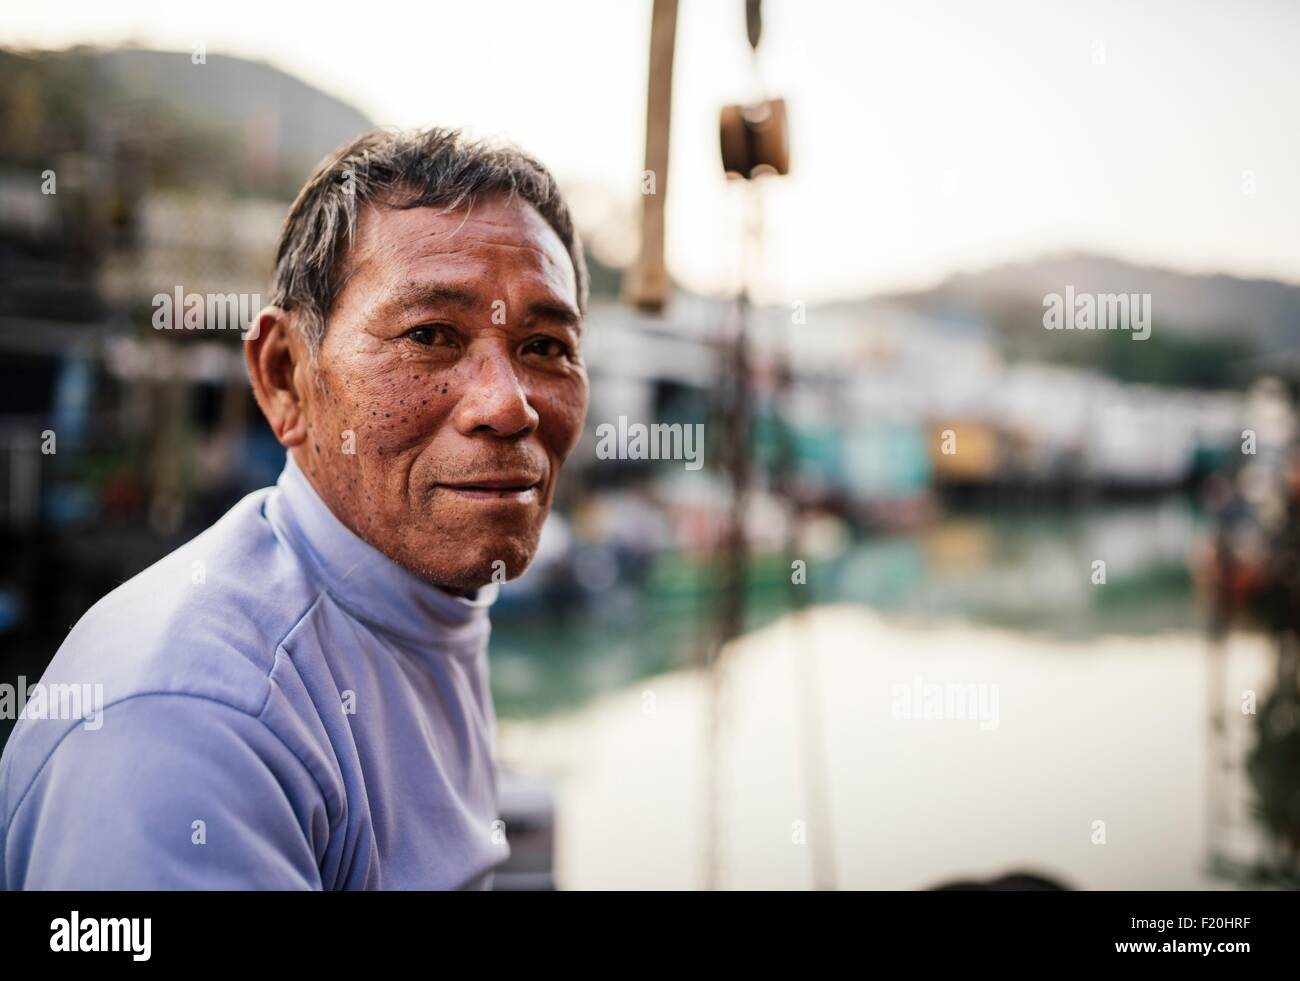 Portrait of senior man, side view, in front of boats on water, looking at camera - Stock Image